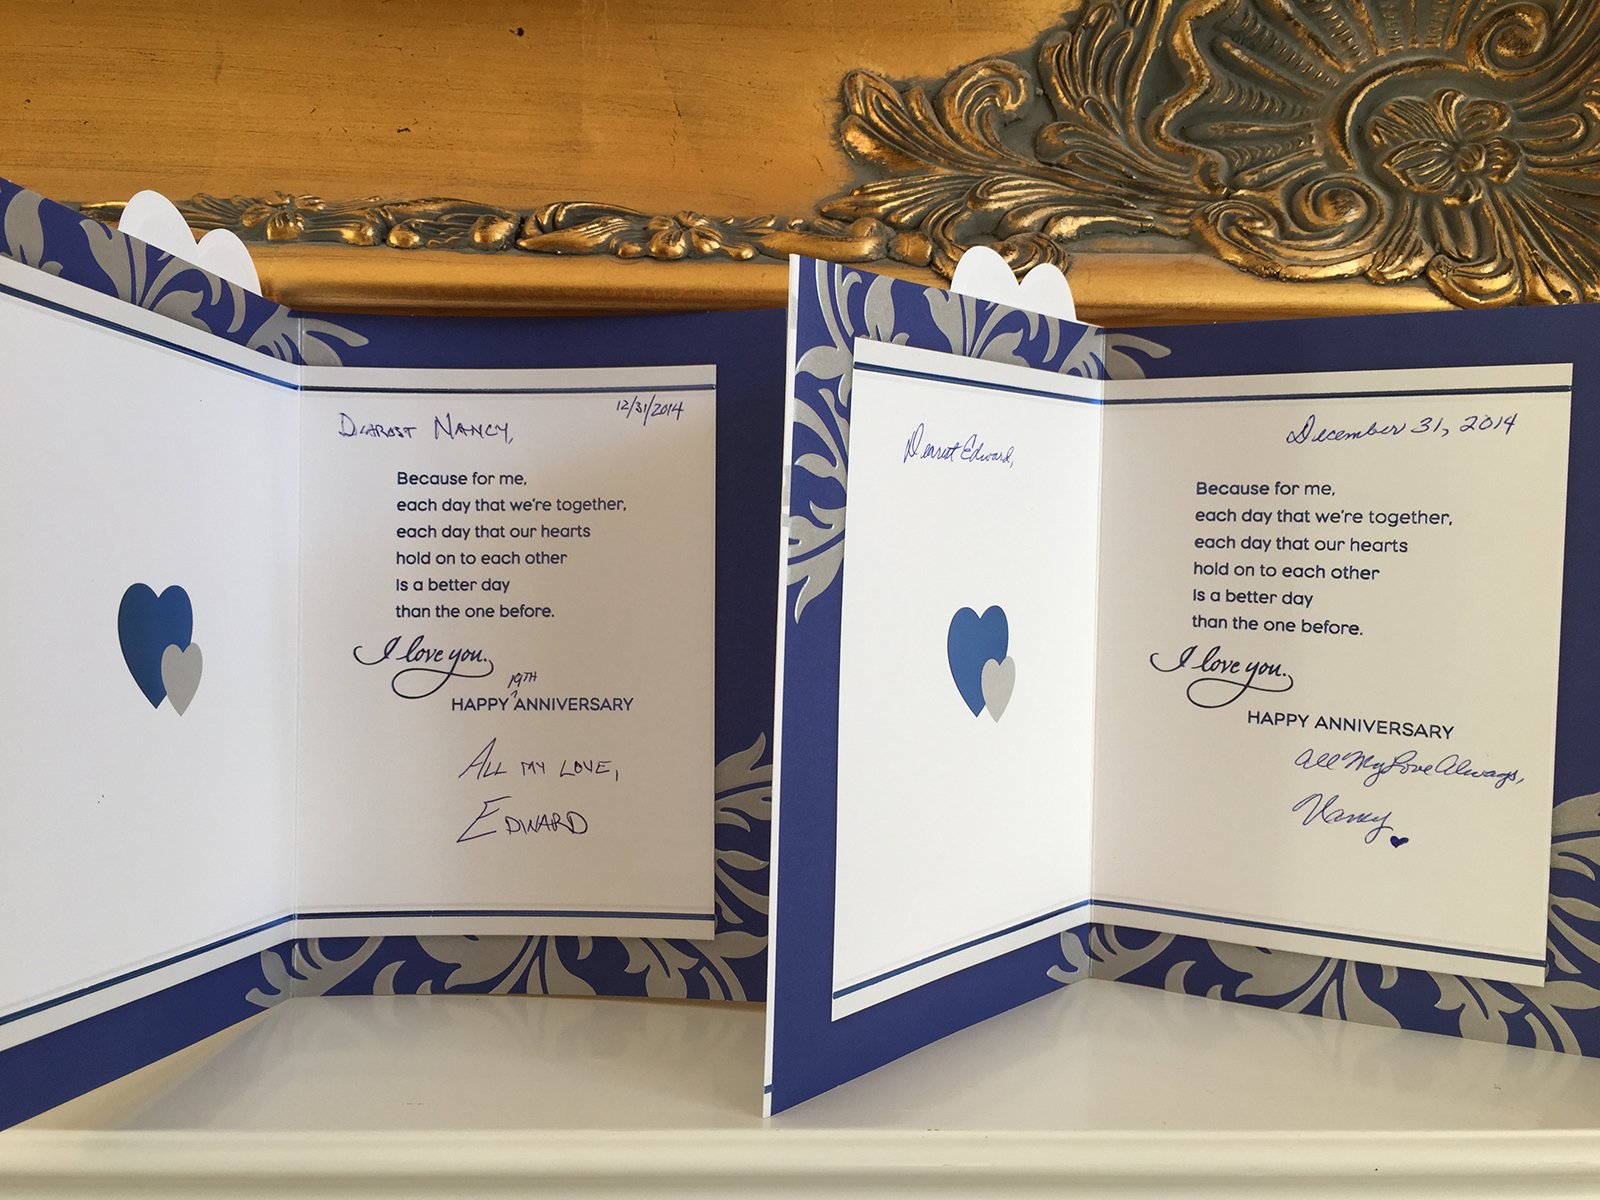 Anniversary cards are identical twins!